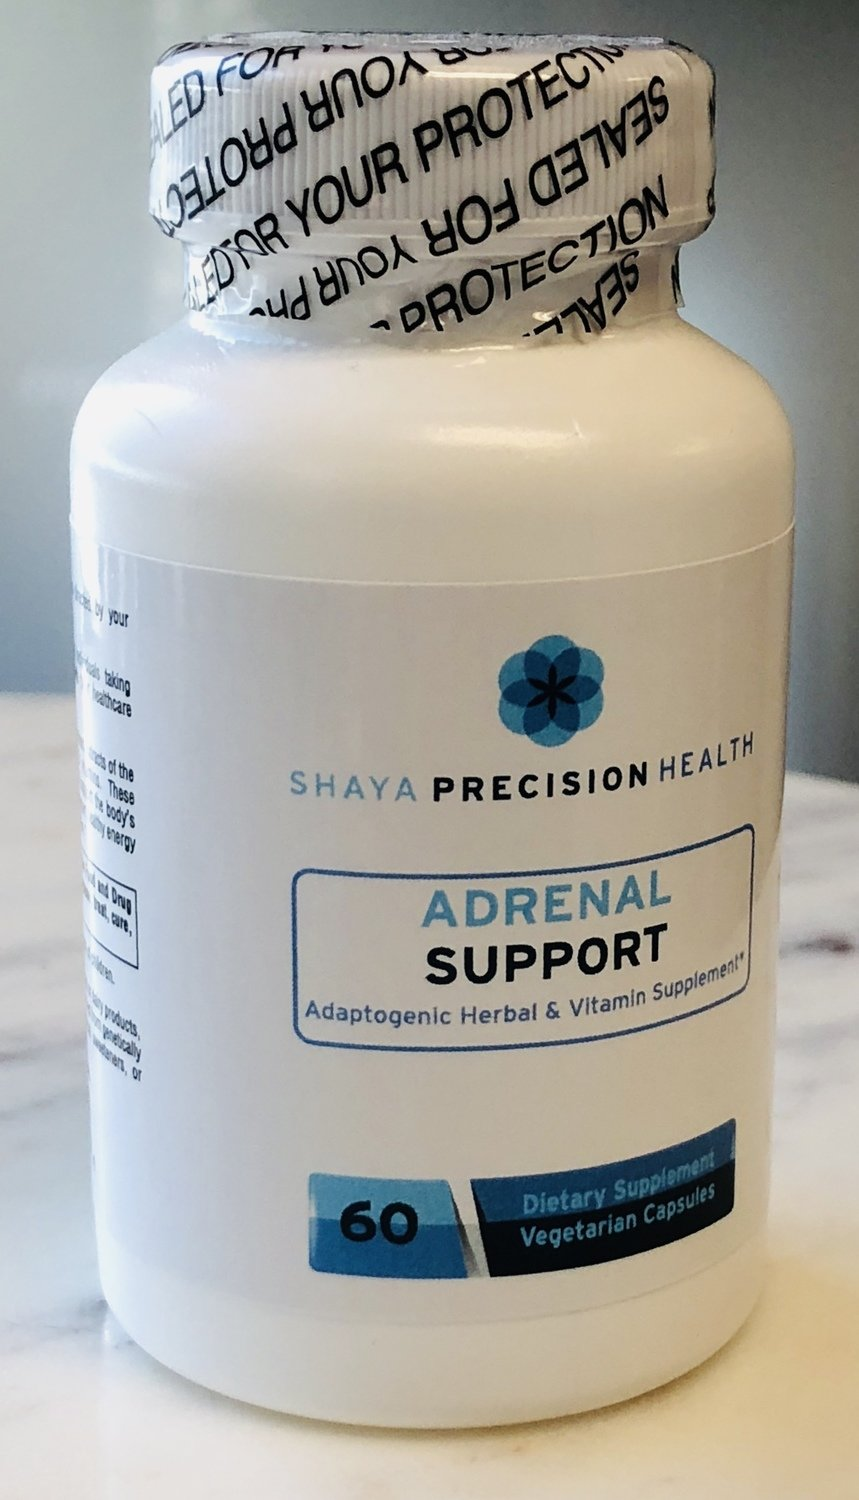 SPH ADRENAL SUPPORT